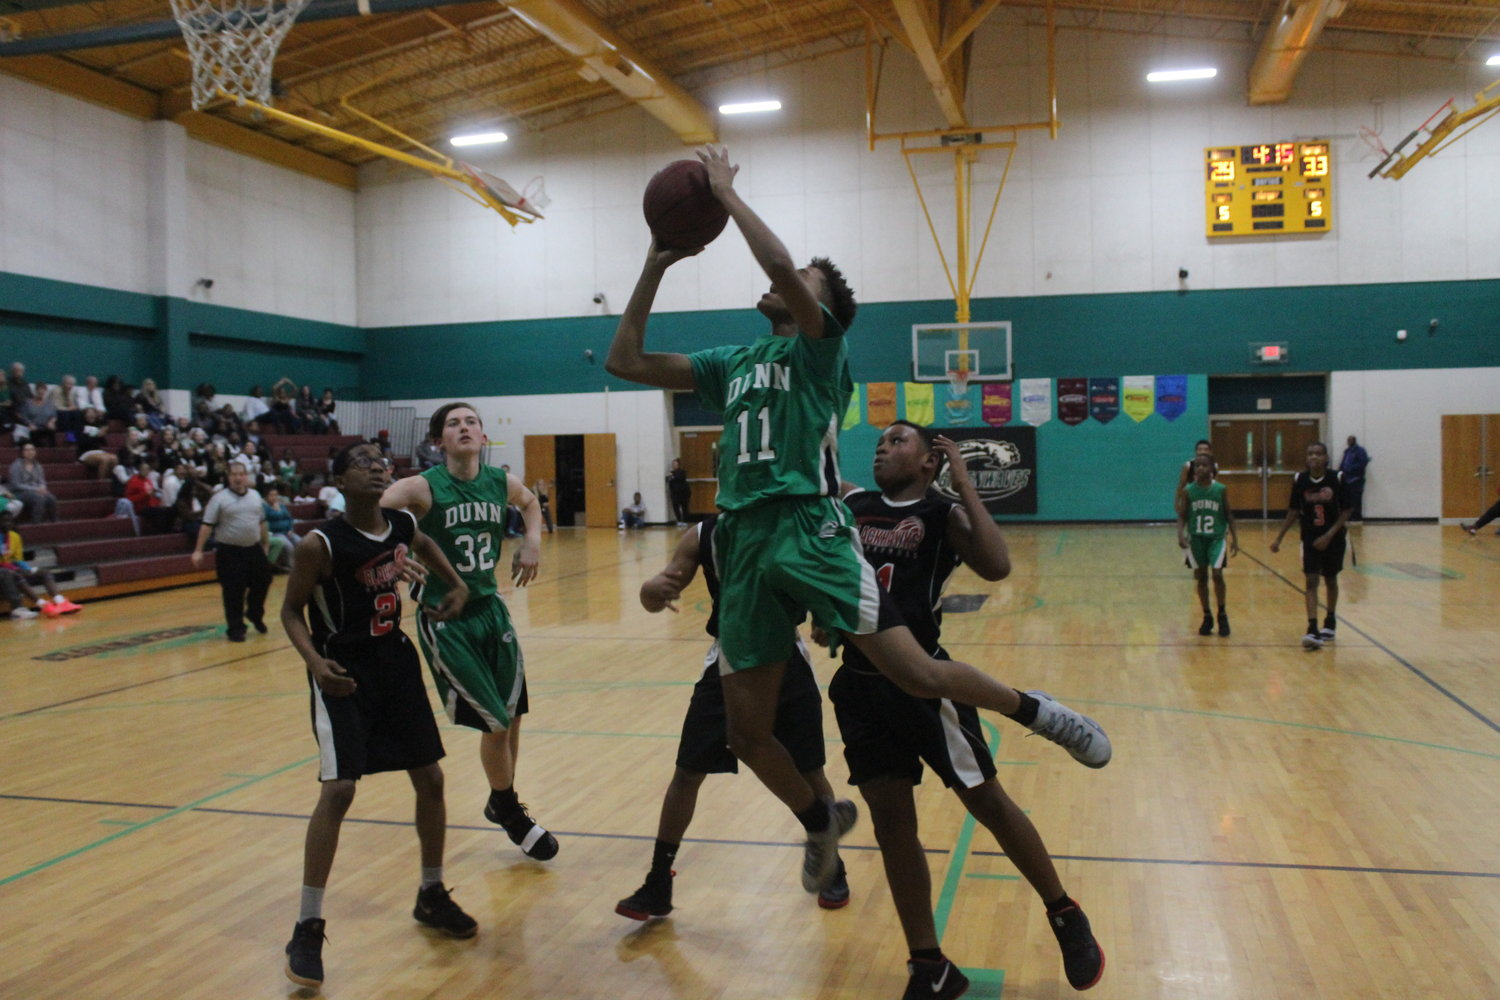 Jaeshaun Murchison soars for two of his 18 points in Dunn's win over Shughart. Murchison scored 11 points in the fourth quarter to rally the Greenwaves to victory.